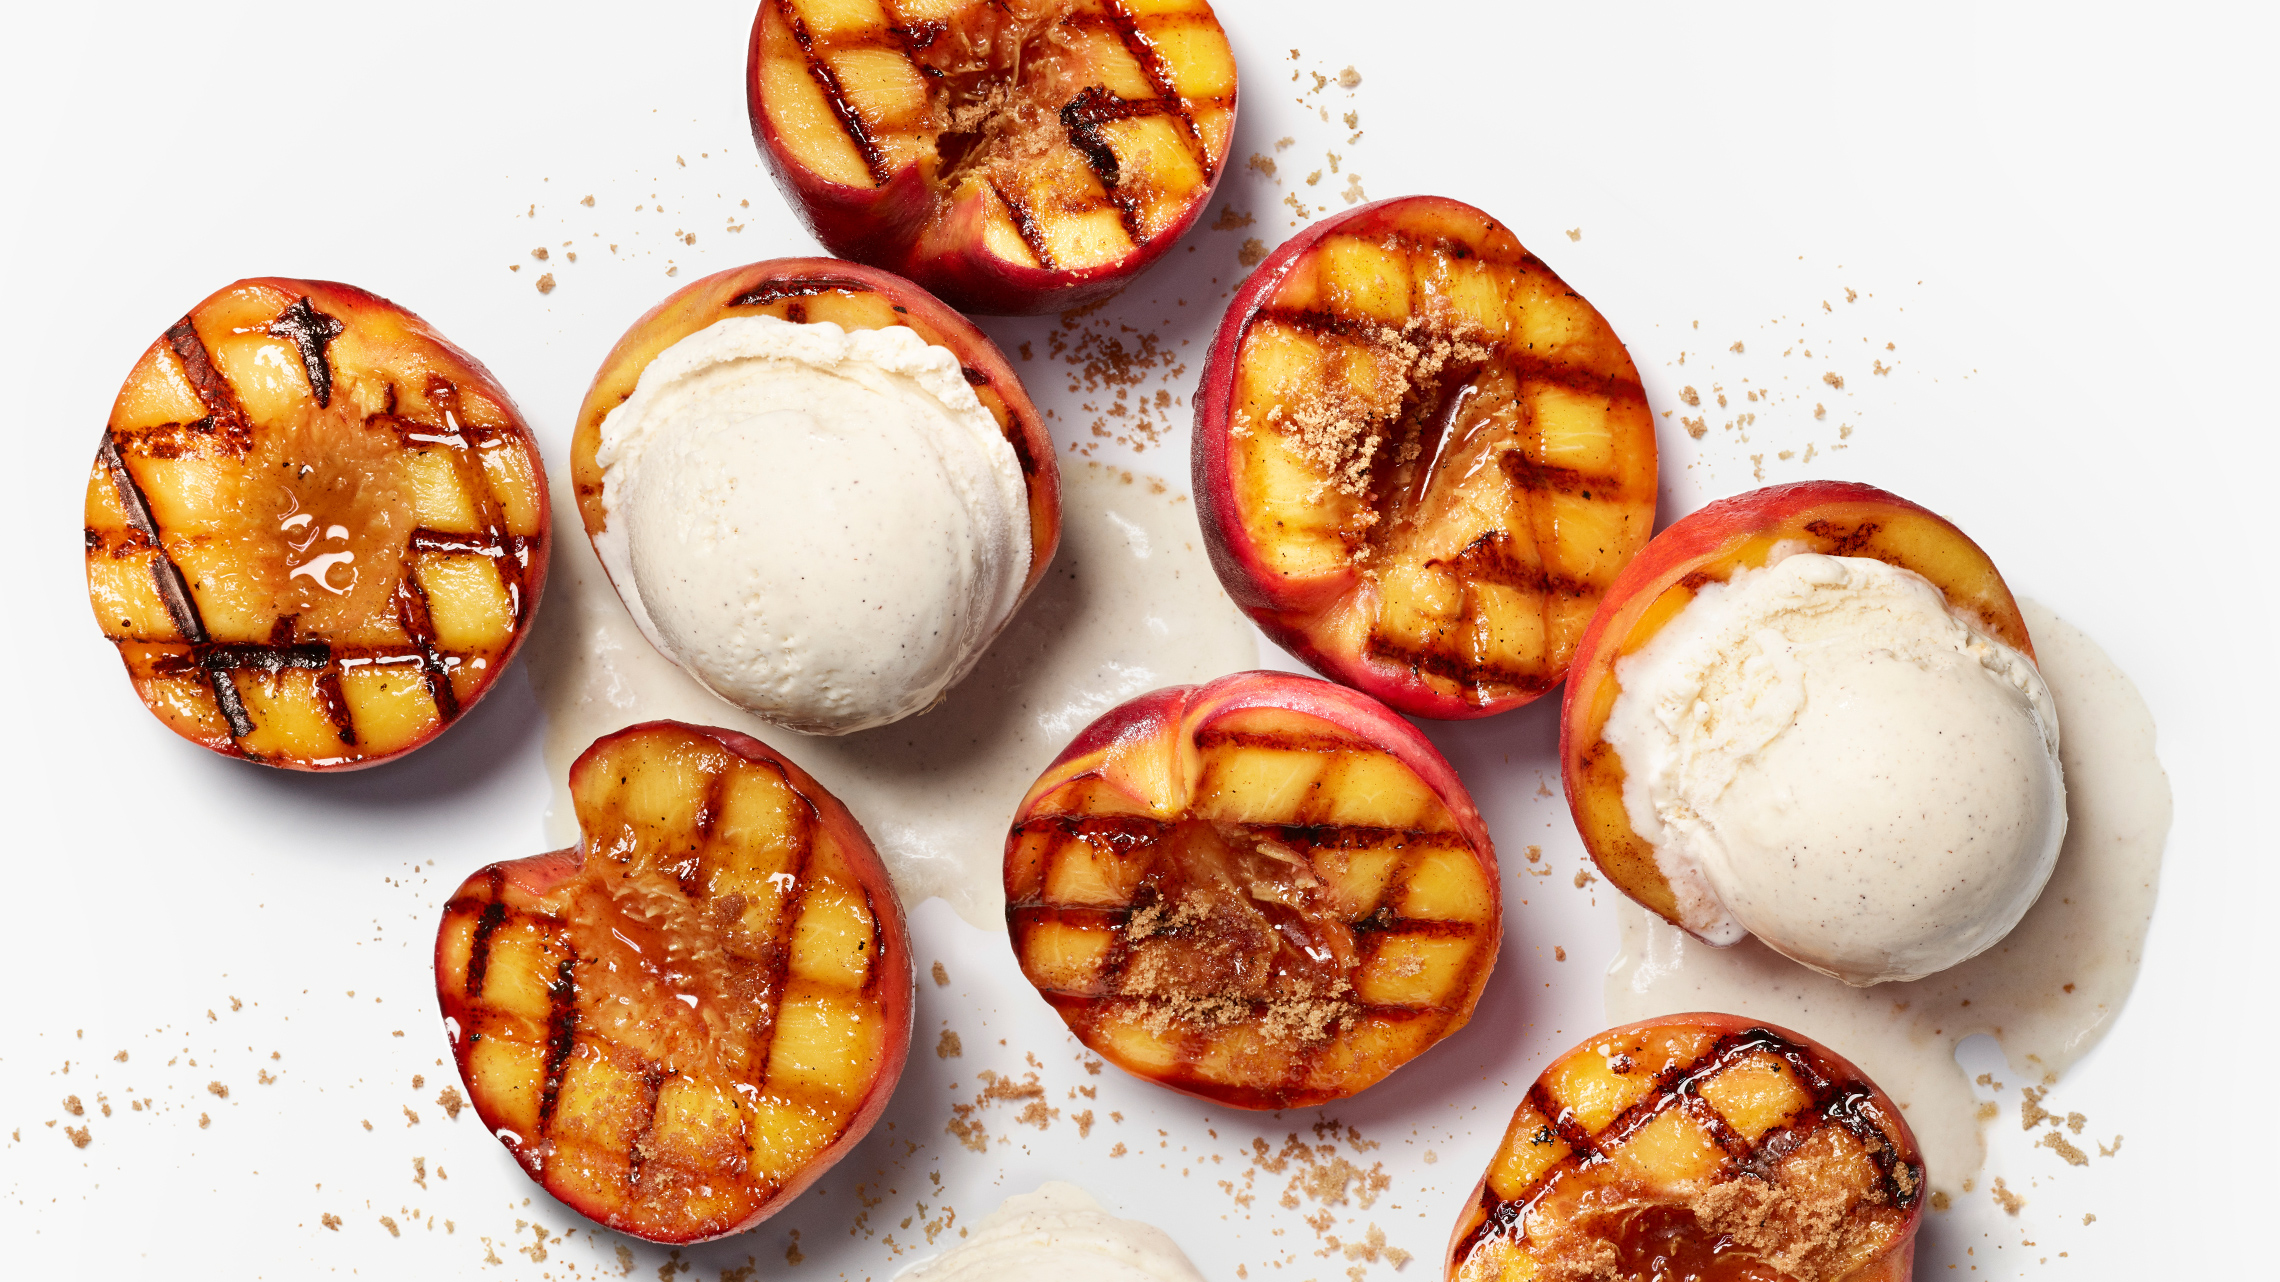 How to Grill Fruit: Peaches, Watermelon and More